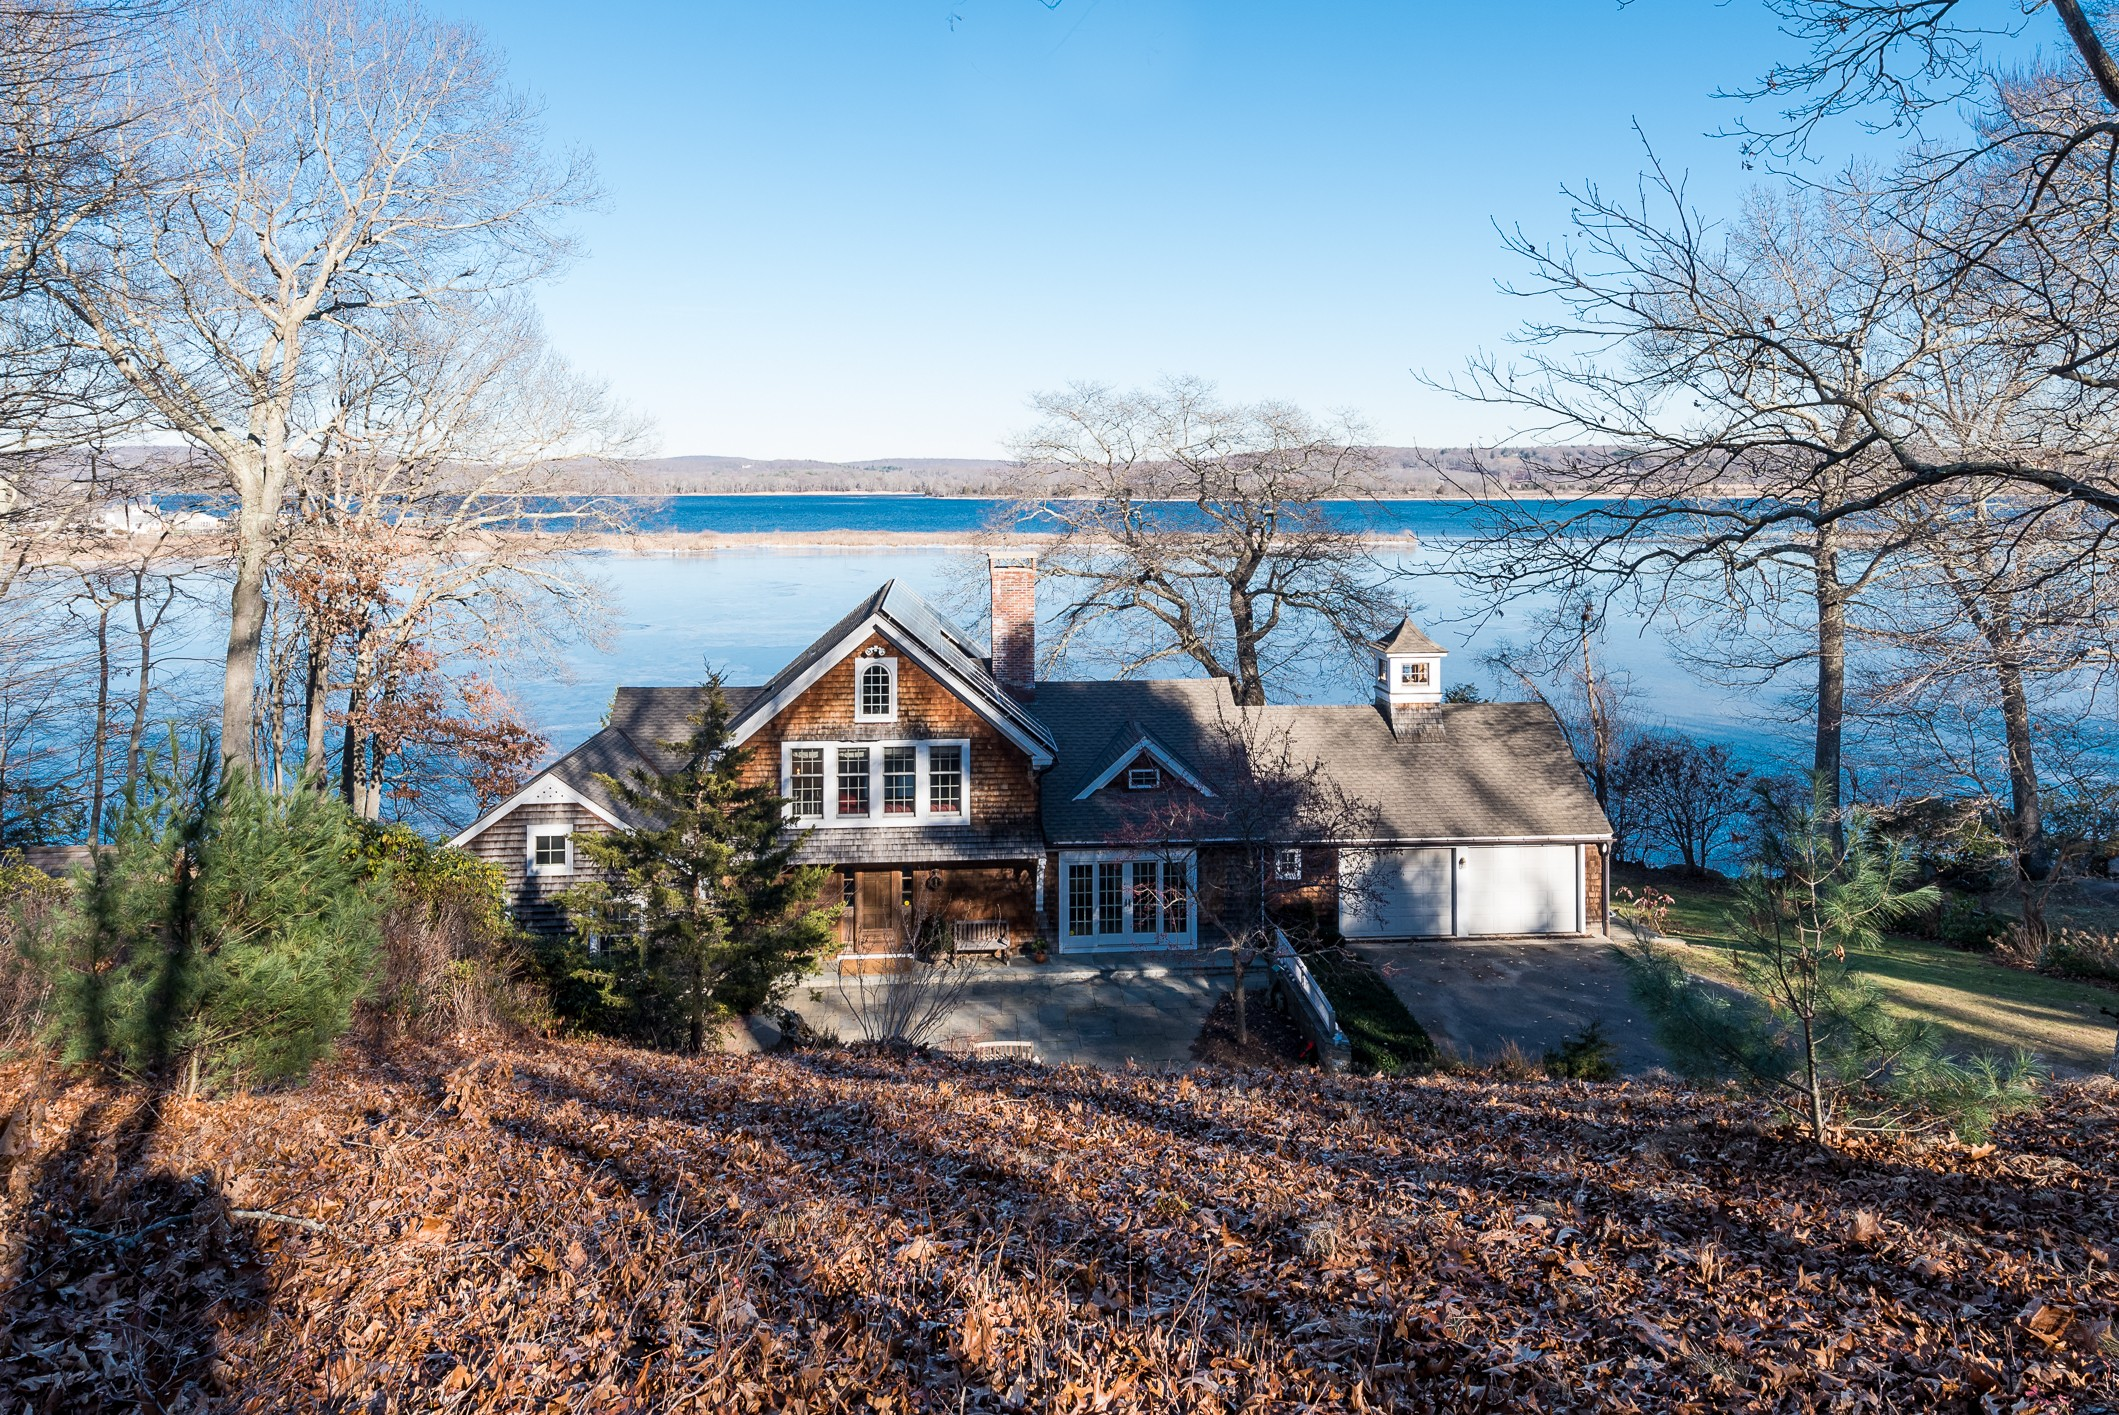 Property For Sale at Direct Waterfront! Sweeping Views of CT River